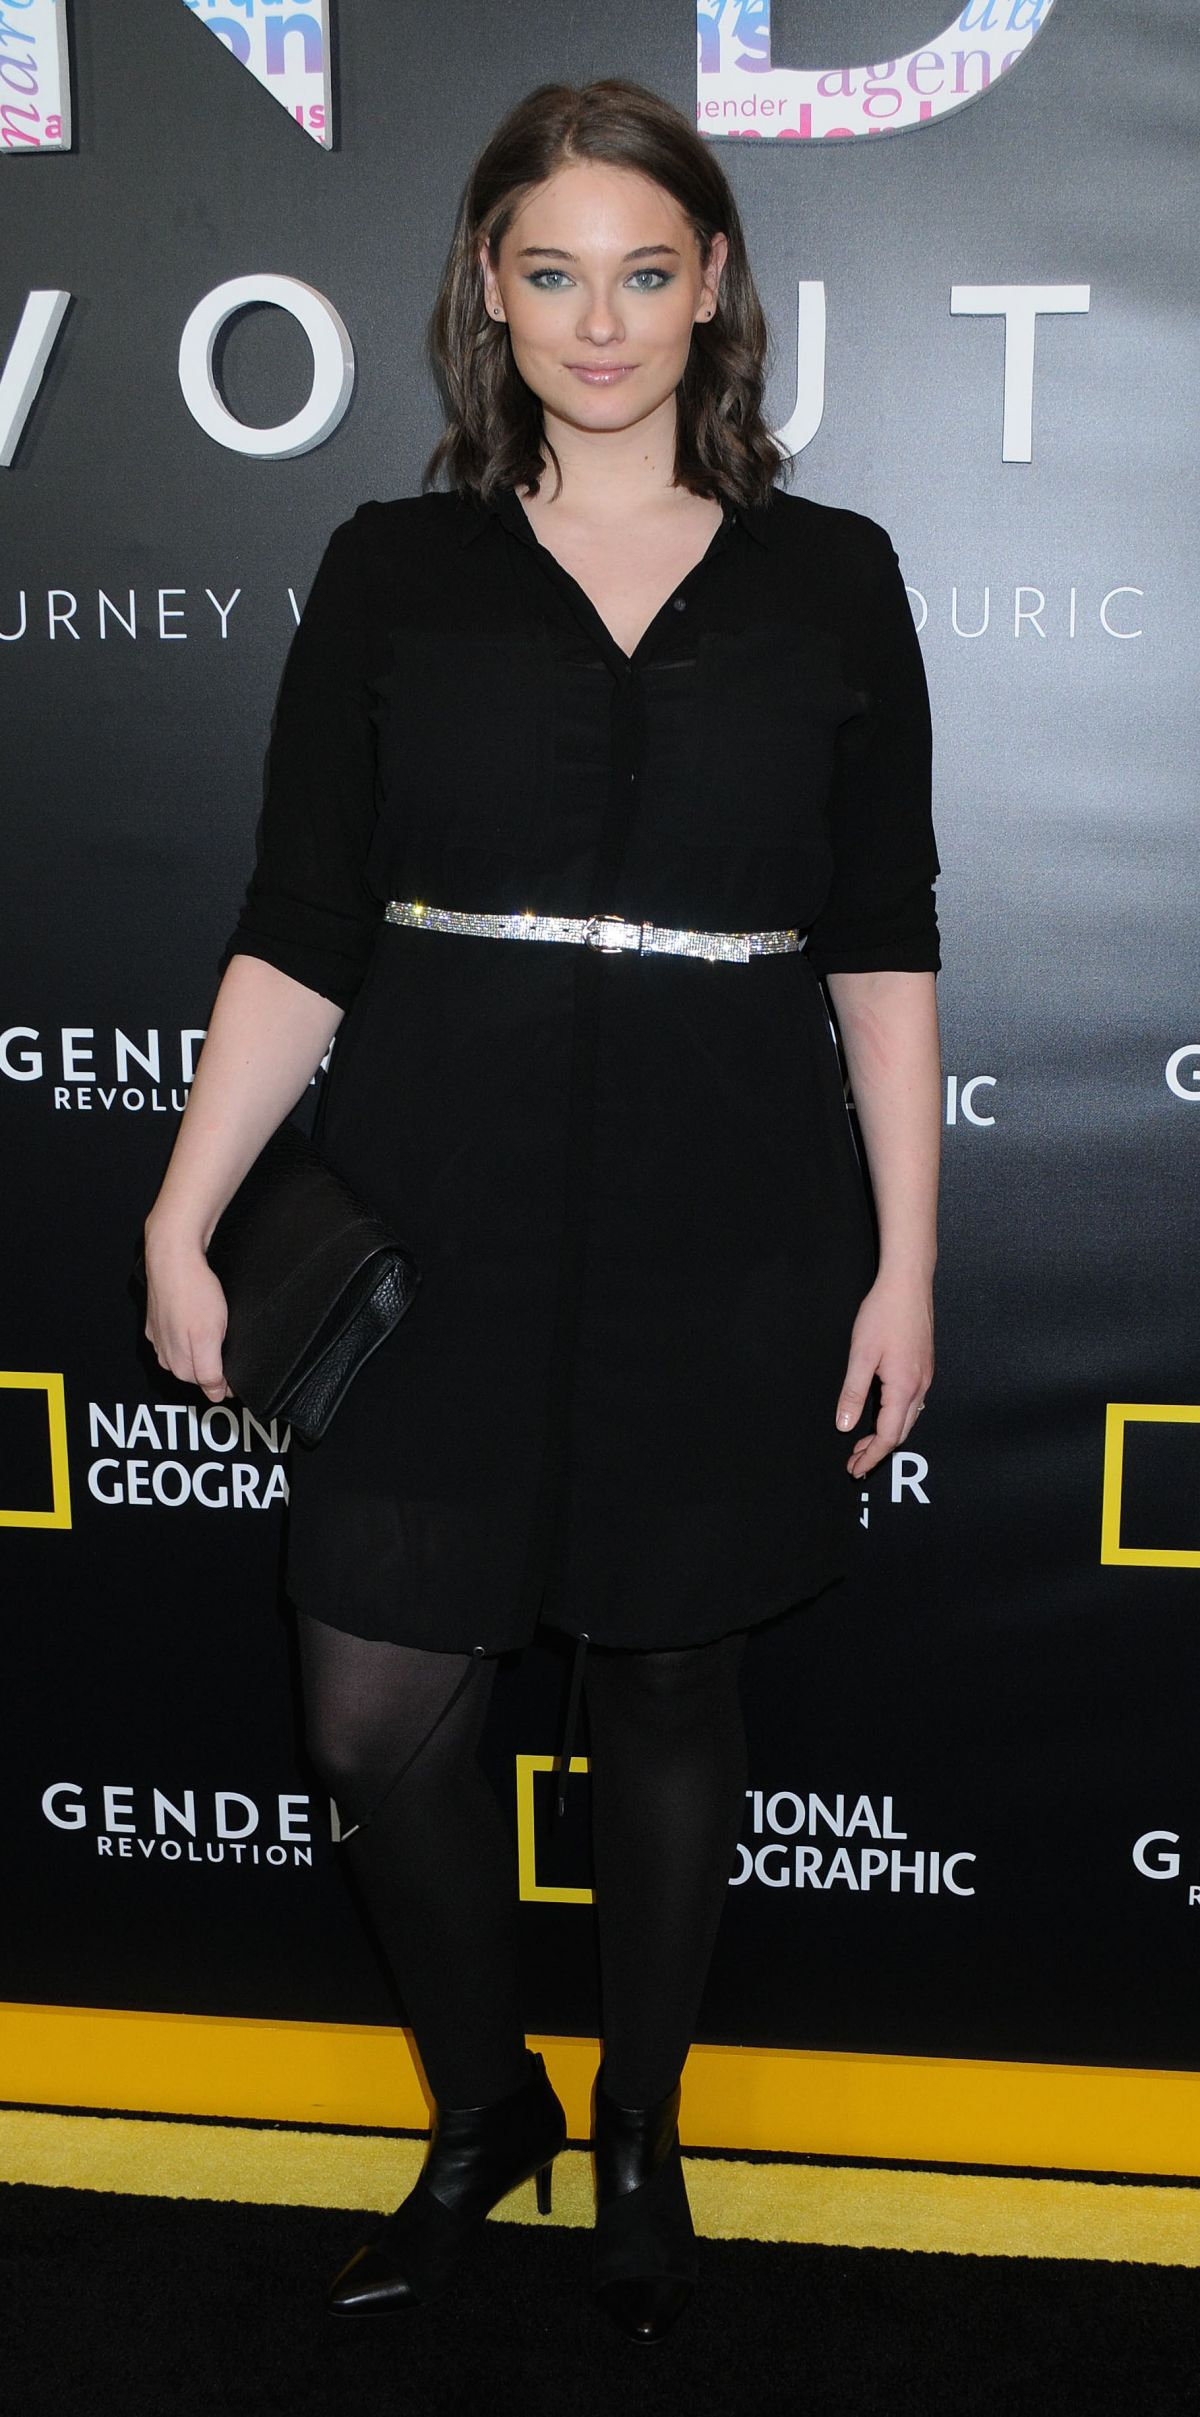 JENNIE RUNK at Gender Revolution: A Journey with Katie Couric Premiere in New York 02/02/2017